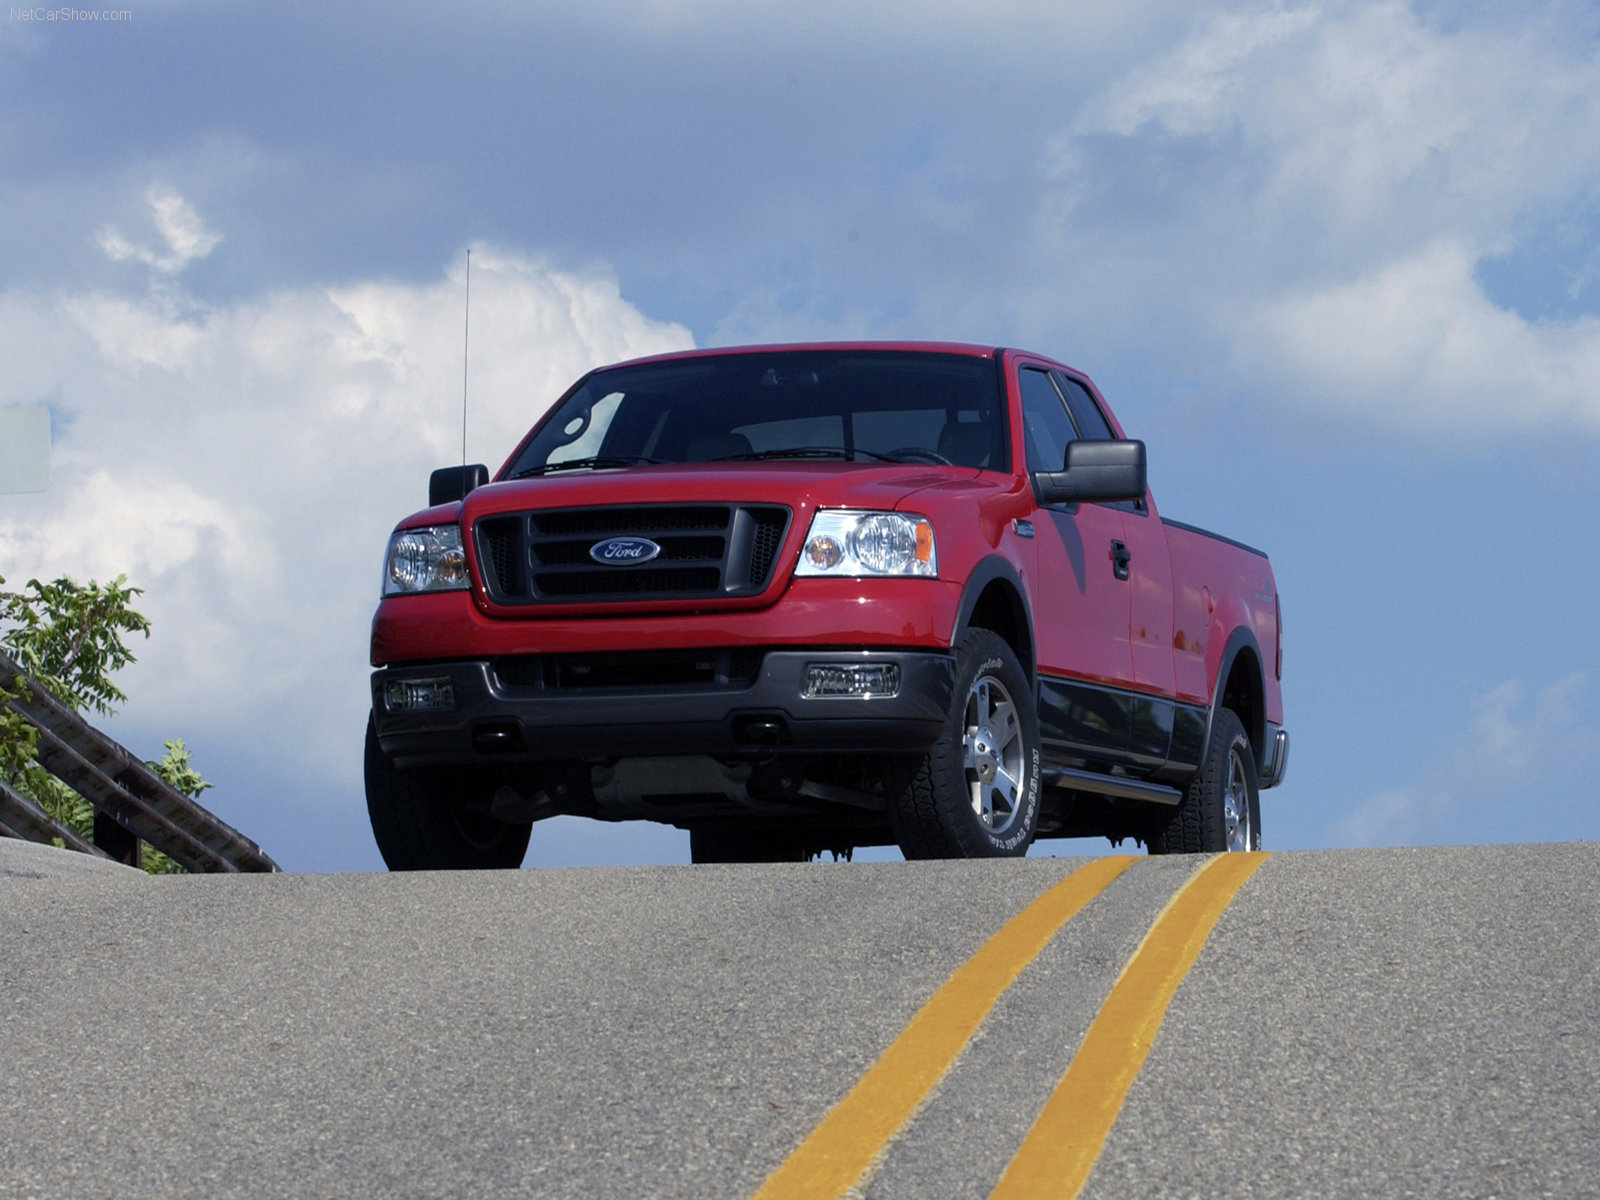 Ford F-150 ExtendedCab Truck 2006